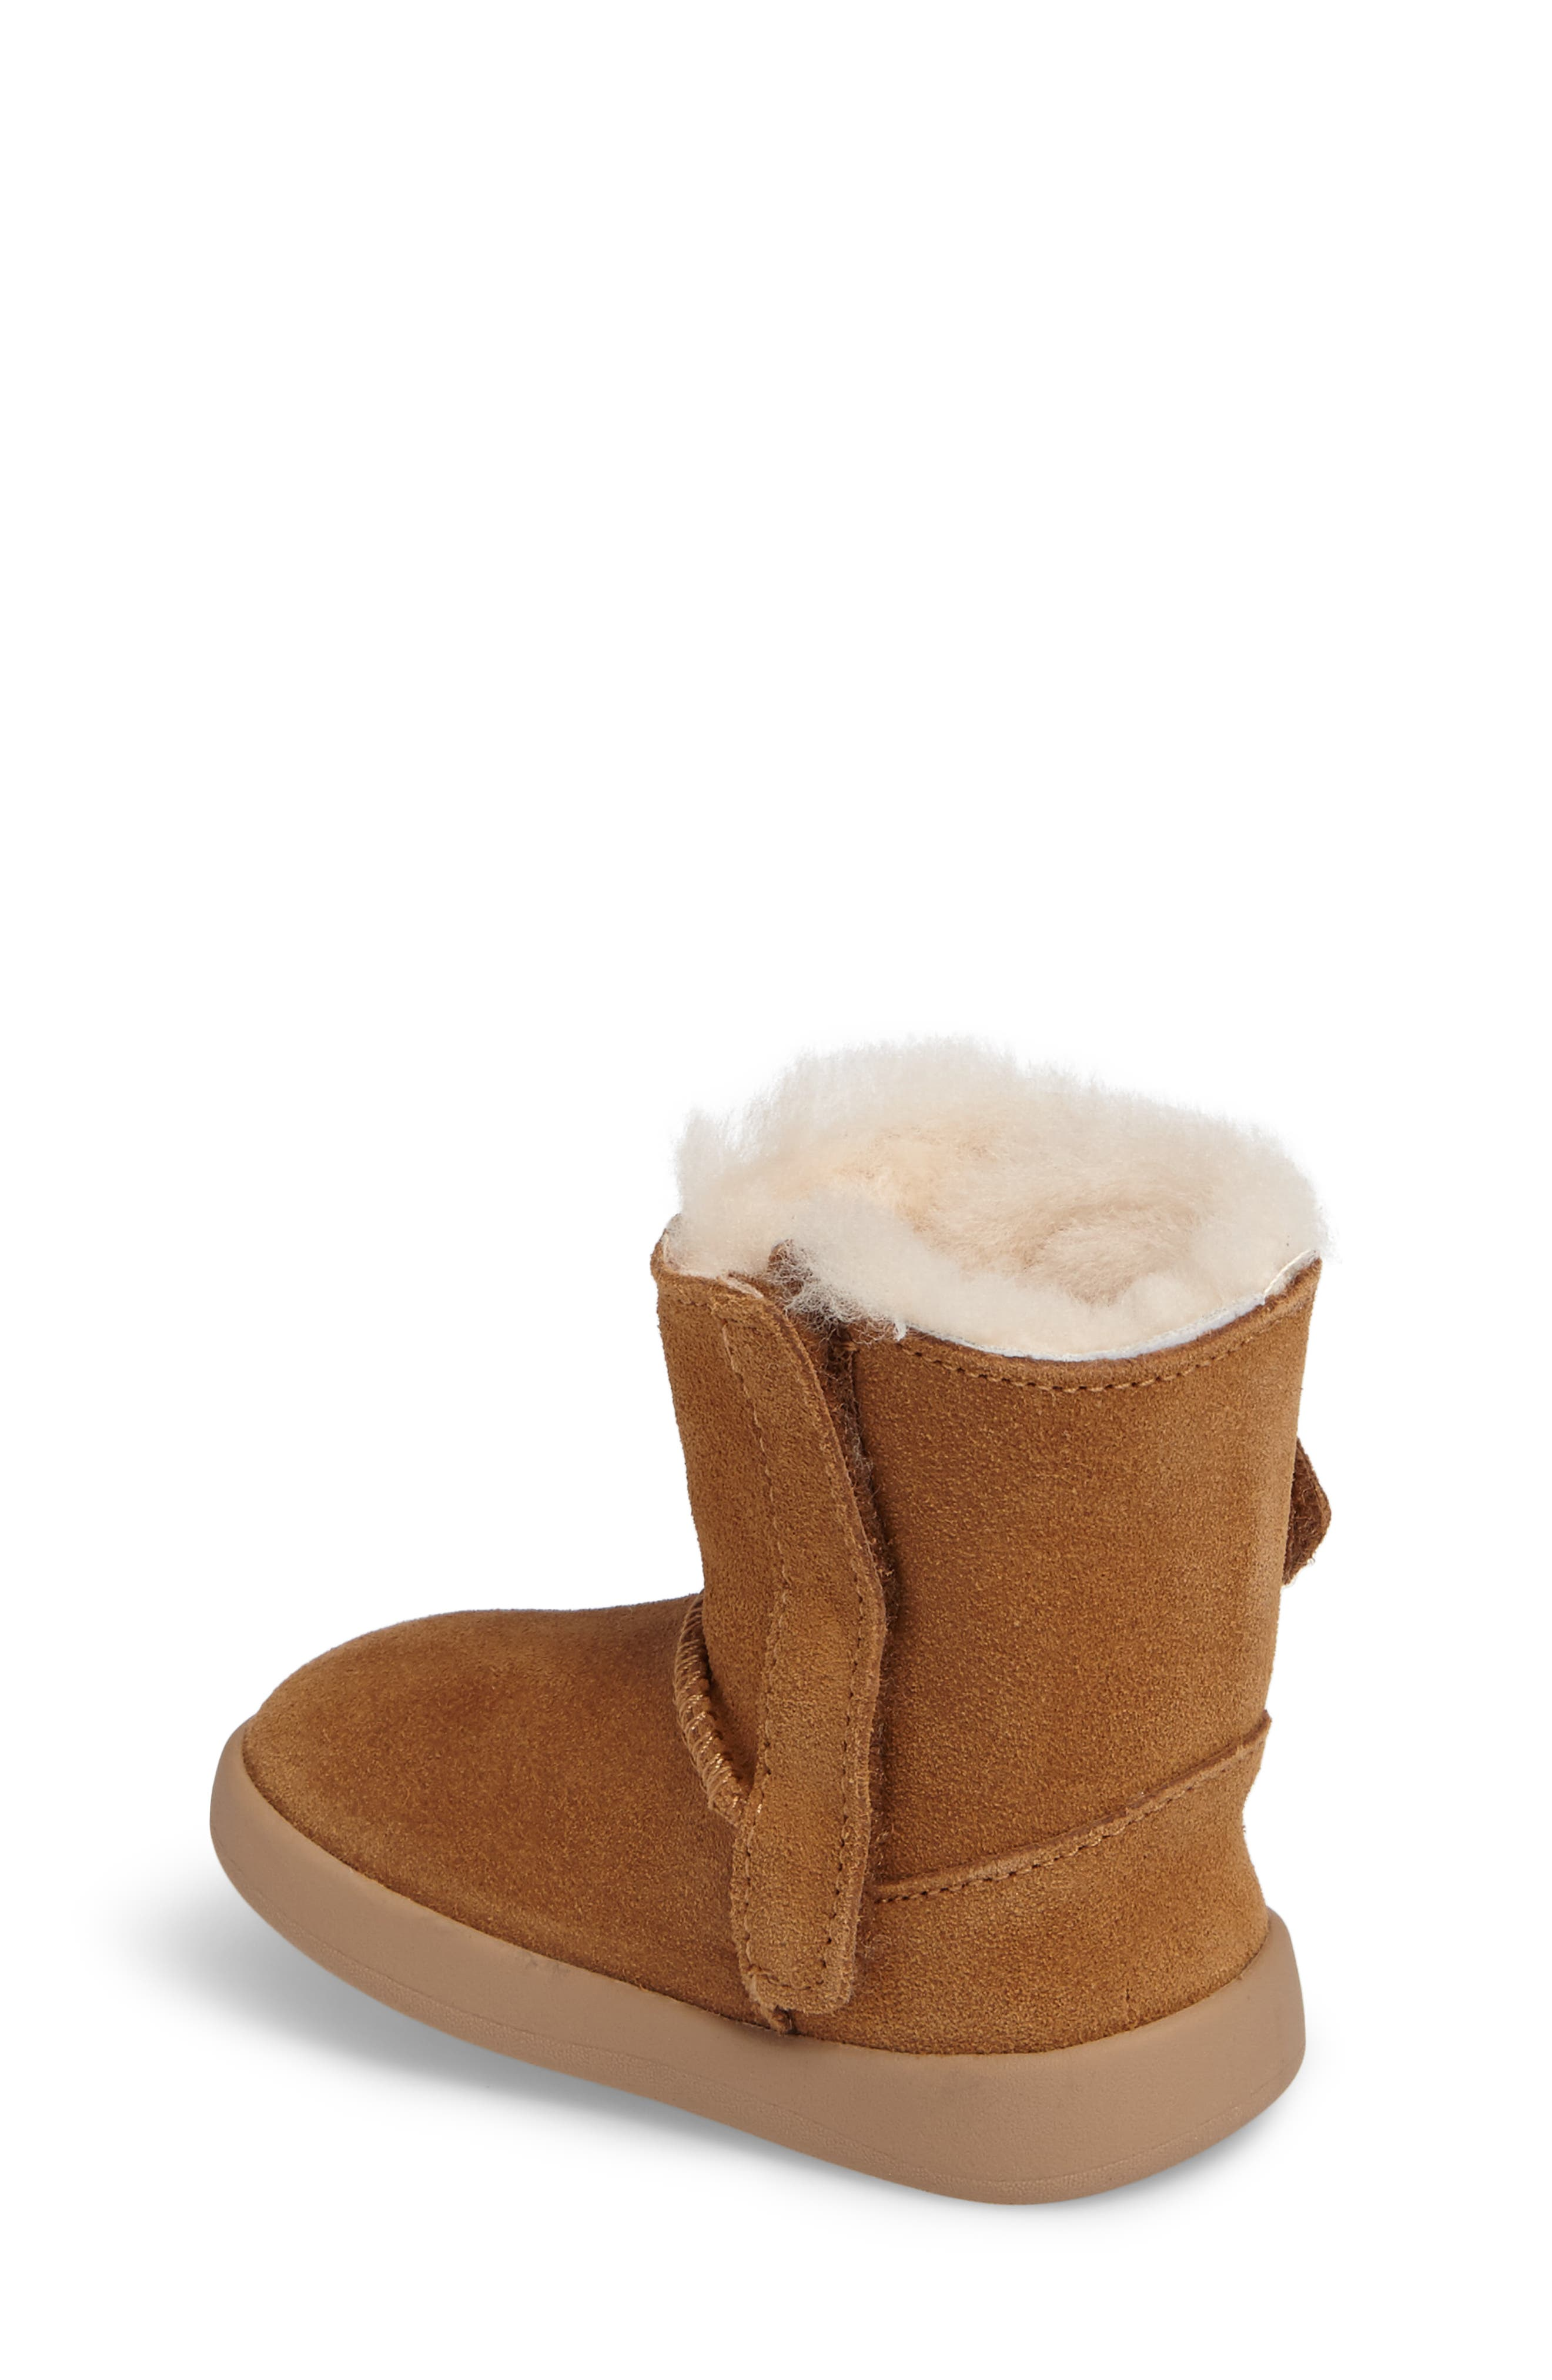 UGG<SUP>®</SUP>, Keelan Genuine Shearling Baby Boot, Alternate thumbnail 2, color, CHESTNUT BROWN